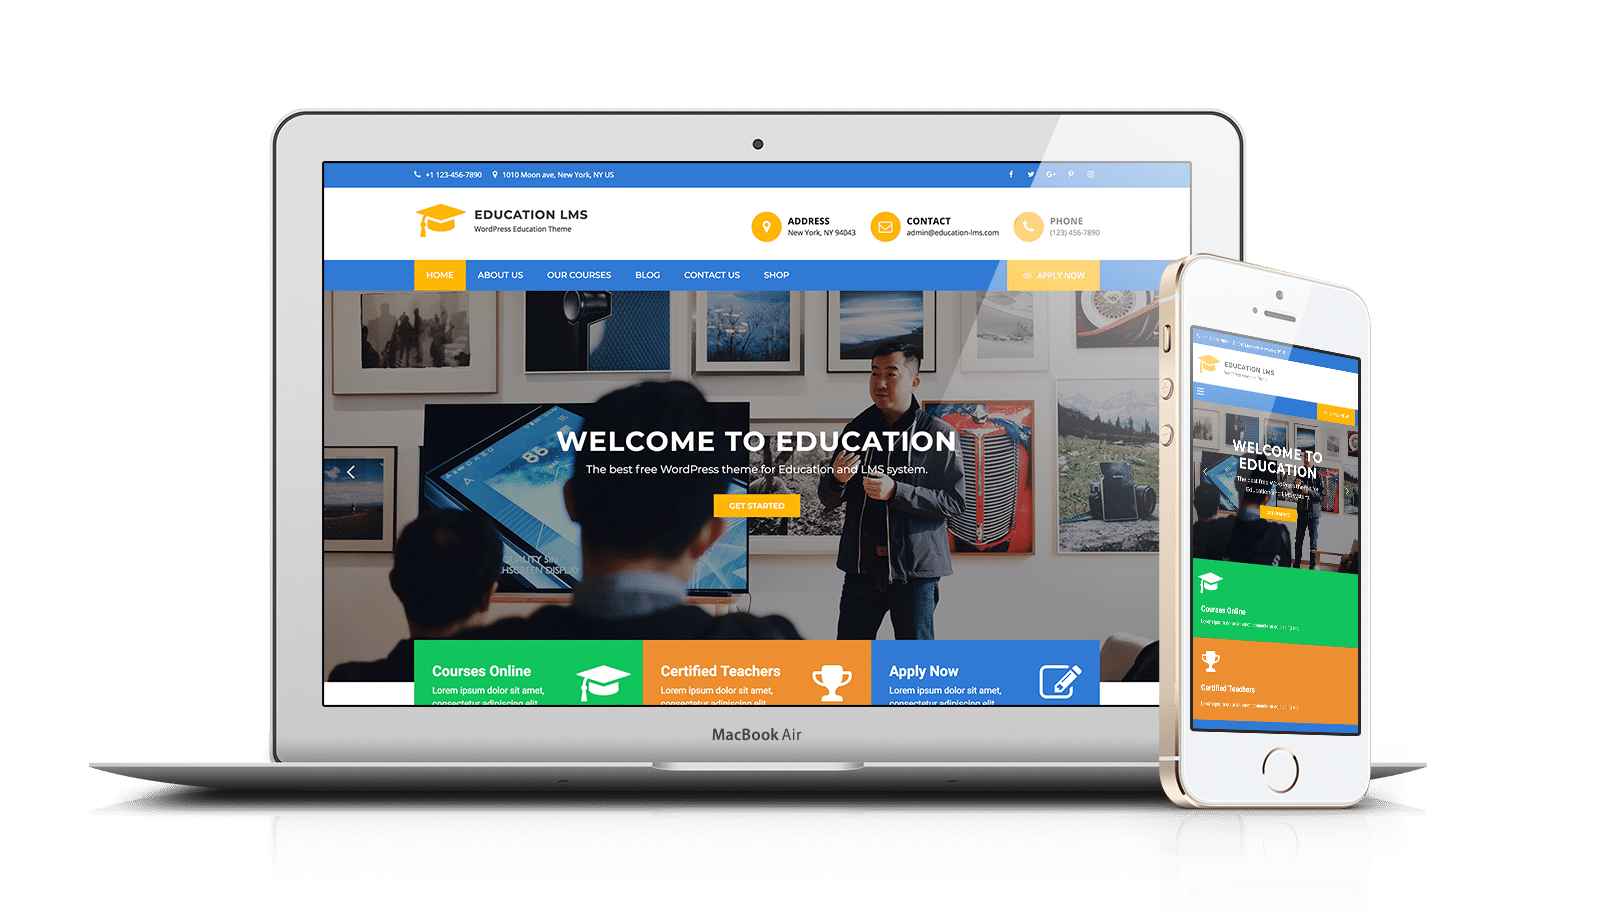 Education LMS Pro